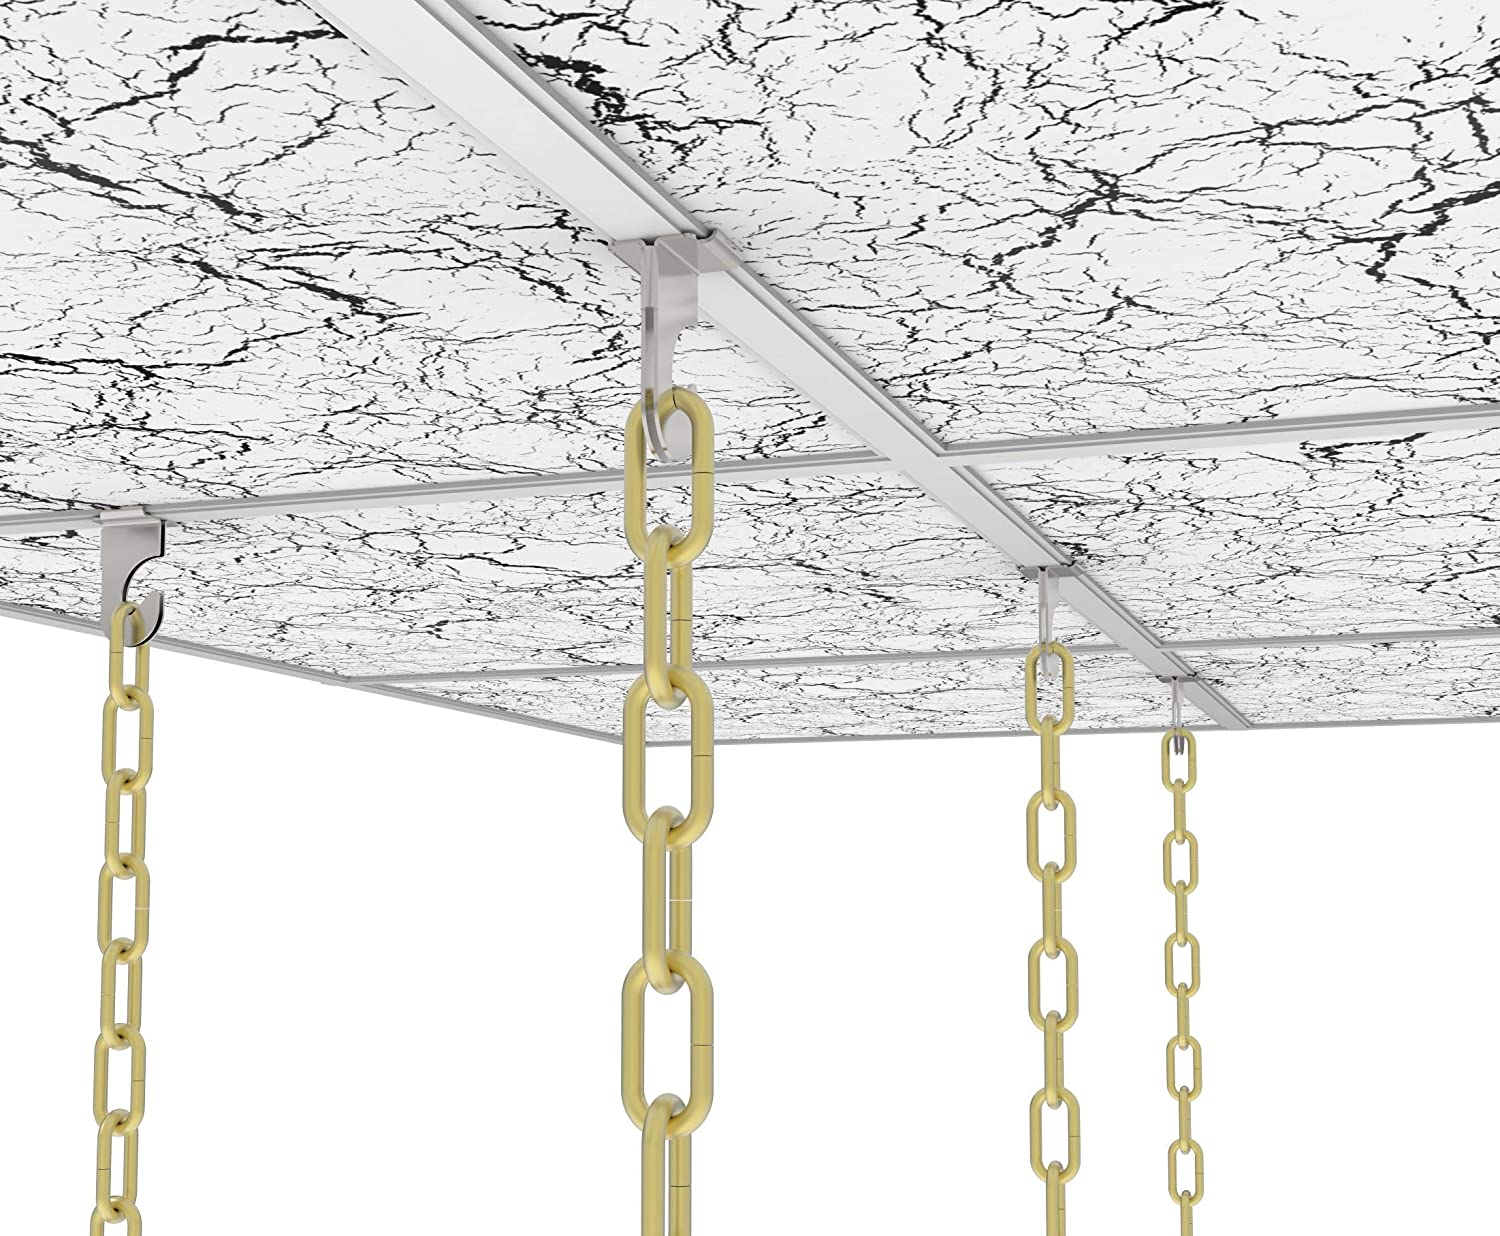 and Grid Ceiling Tile Ceiling Suspended Ceilings 10 Pack Great for Office , Classroom and Home Decorations T-Bar Clip fits Drop Ceilings LEOZDD Extra Heavy Duty Ceiling Hooks